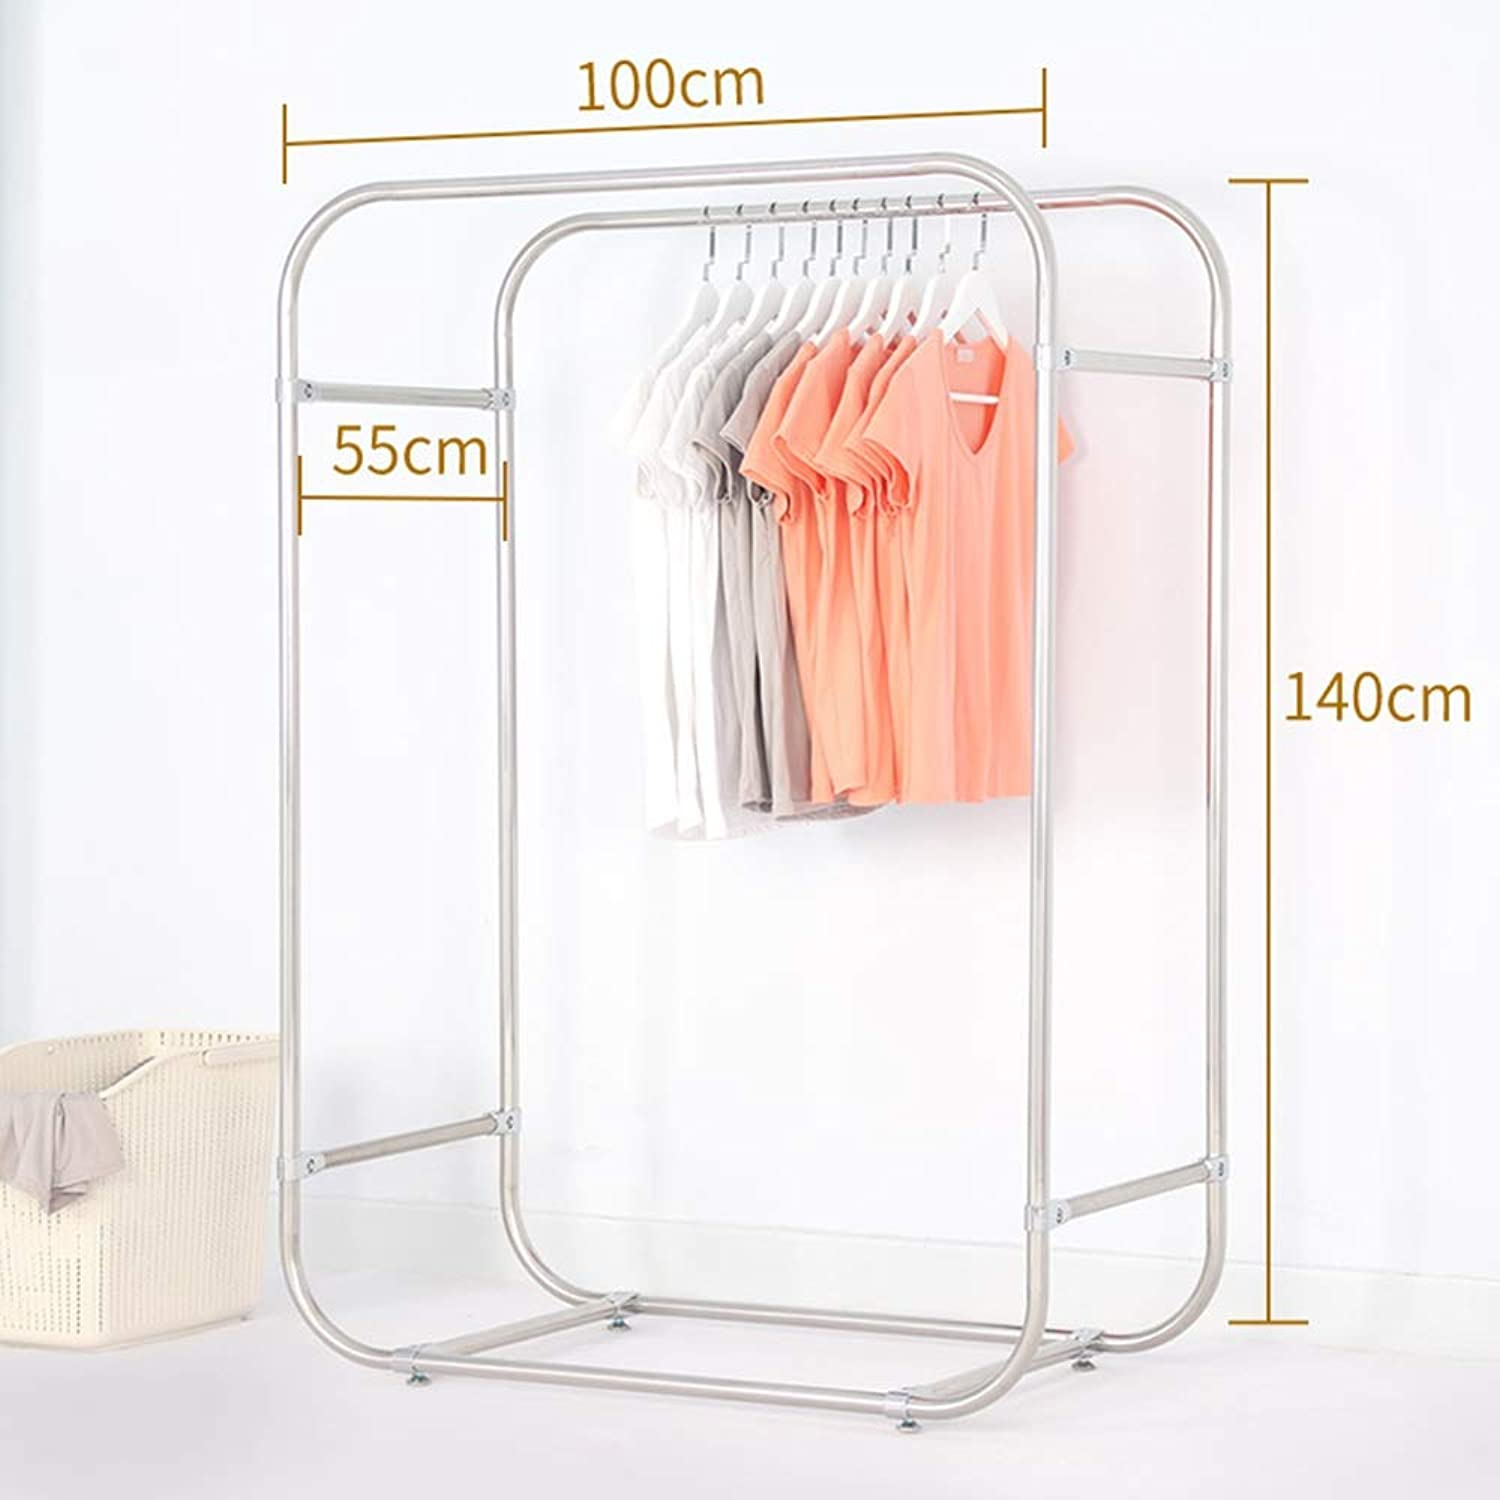 JIAYING Coat Rack, Floor-Standing Stainless Steel Drying Rack Indoor Drying Rack Balcony Double Rod Simple Hanger Coat Rack Multi-Size Selection (Size   100×140cm)